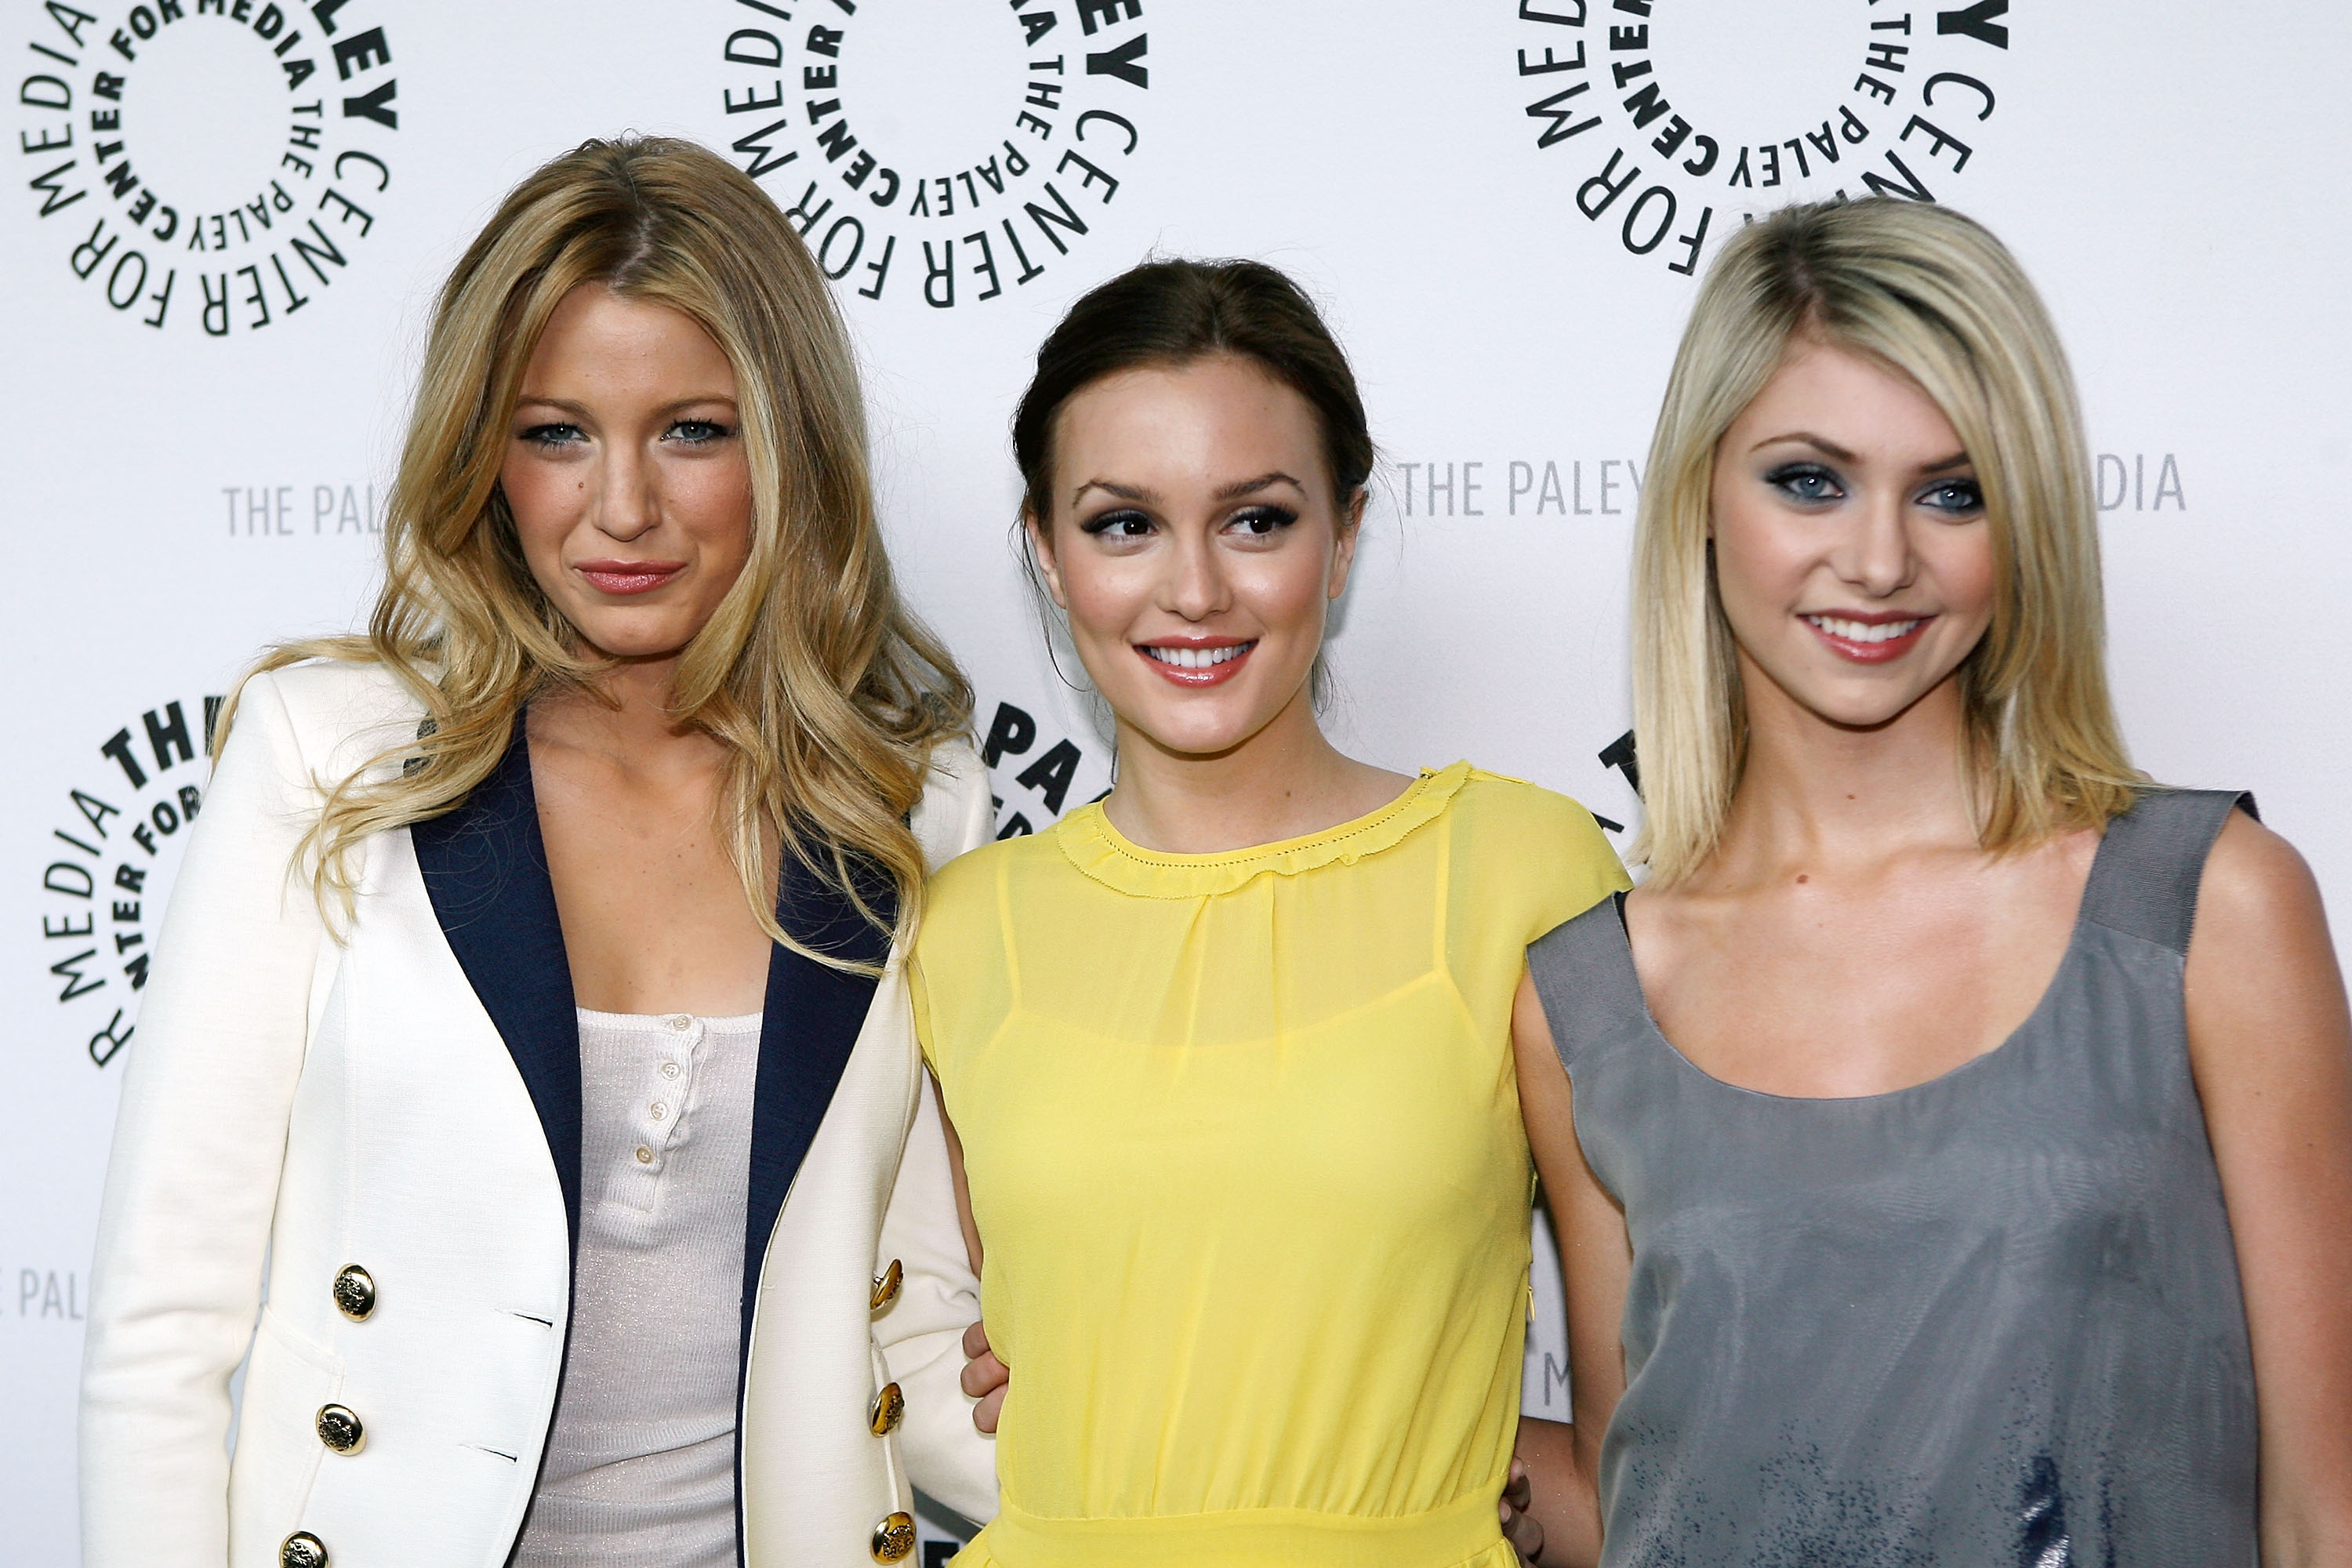 Blake Lively, Leighton Meester, and Taylor Momsen smiled for photographers at a PaleyFest event in March 2008.